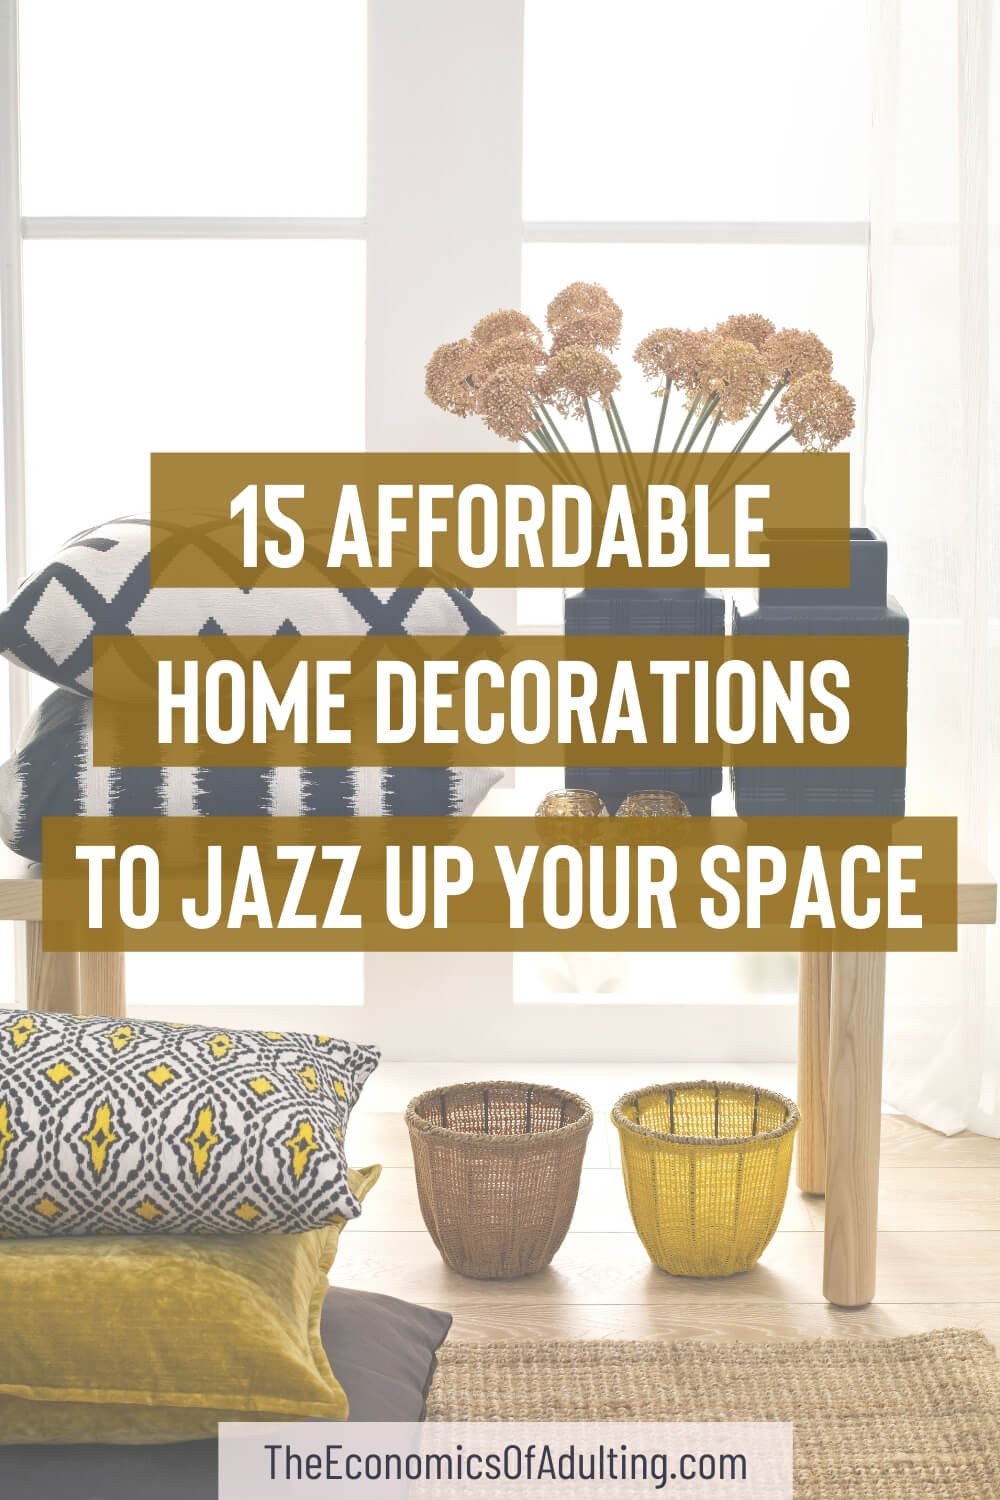 Colorful cushions next to a vase of flowers with the headline '15 Affordable Home Decorations To Jazz Up Your Space'